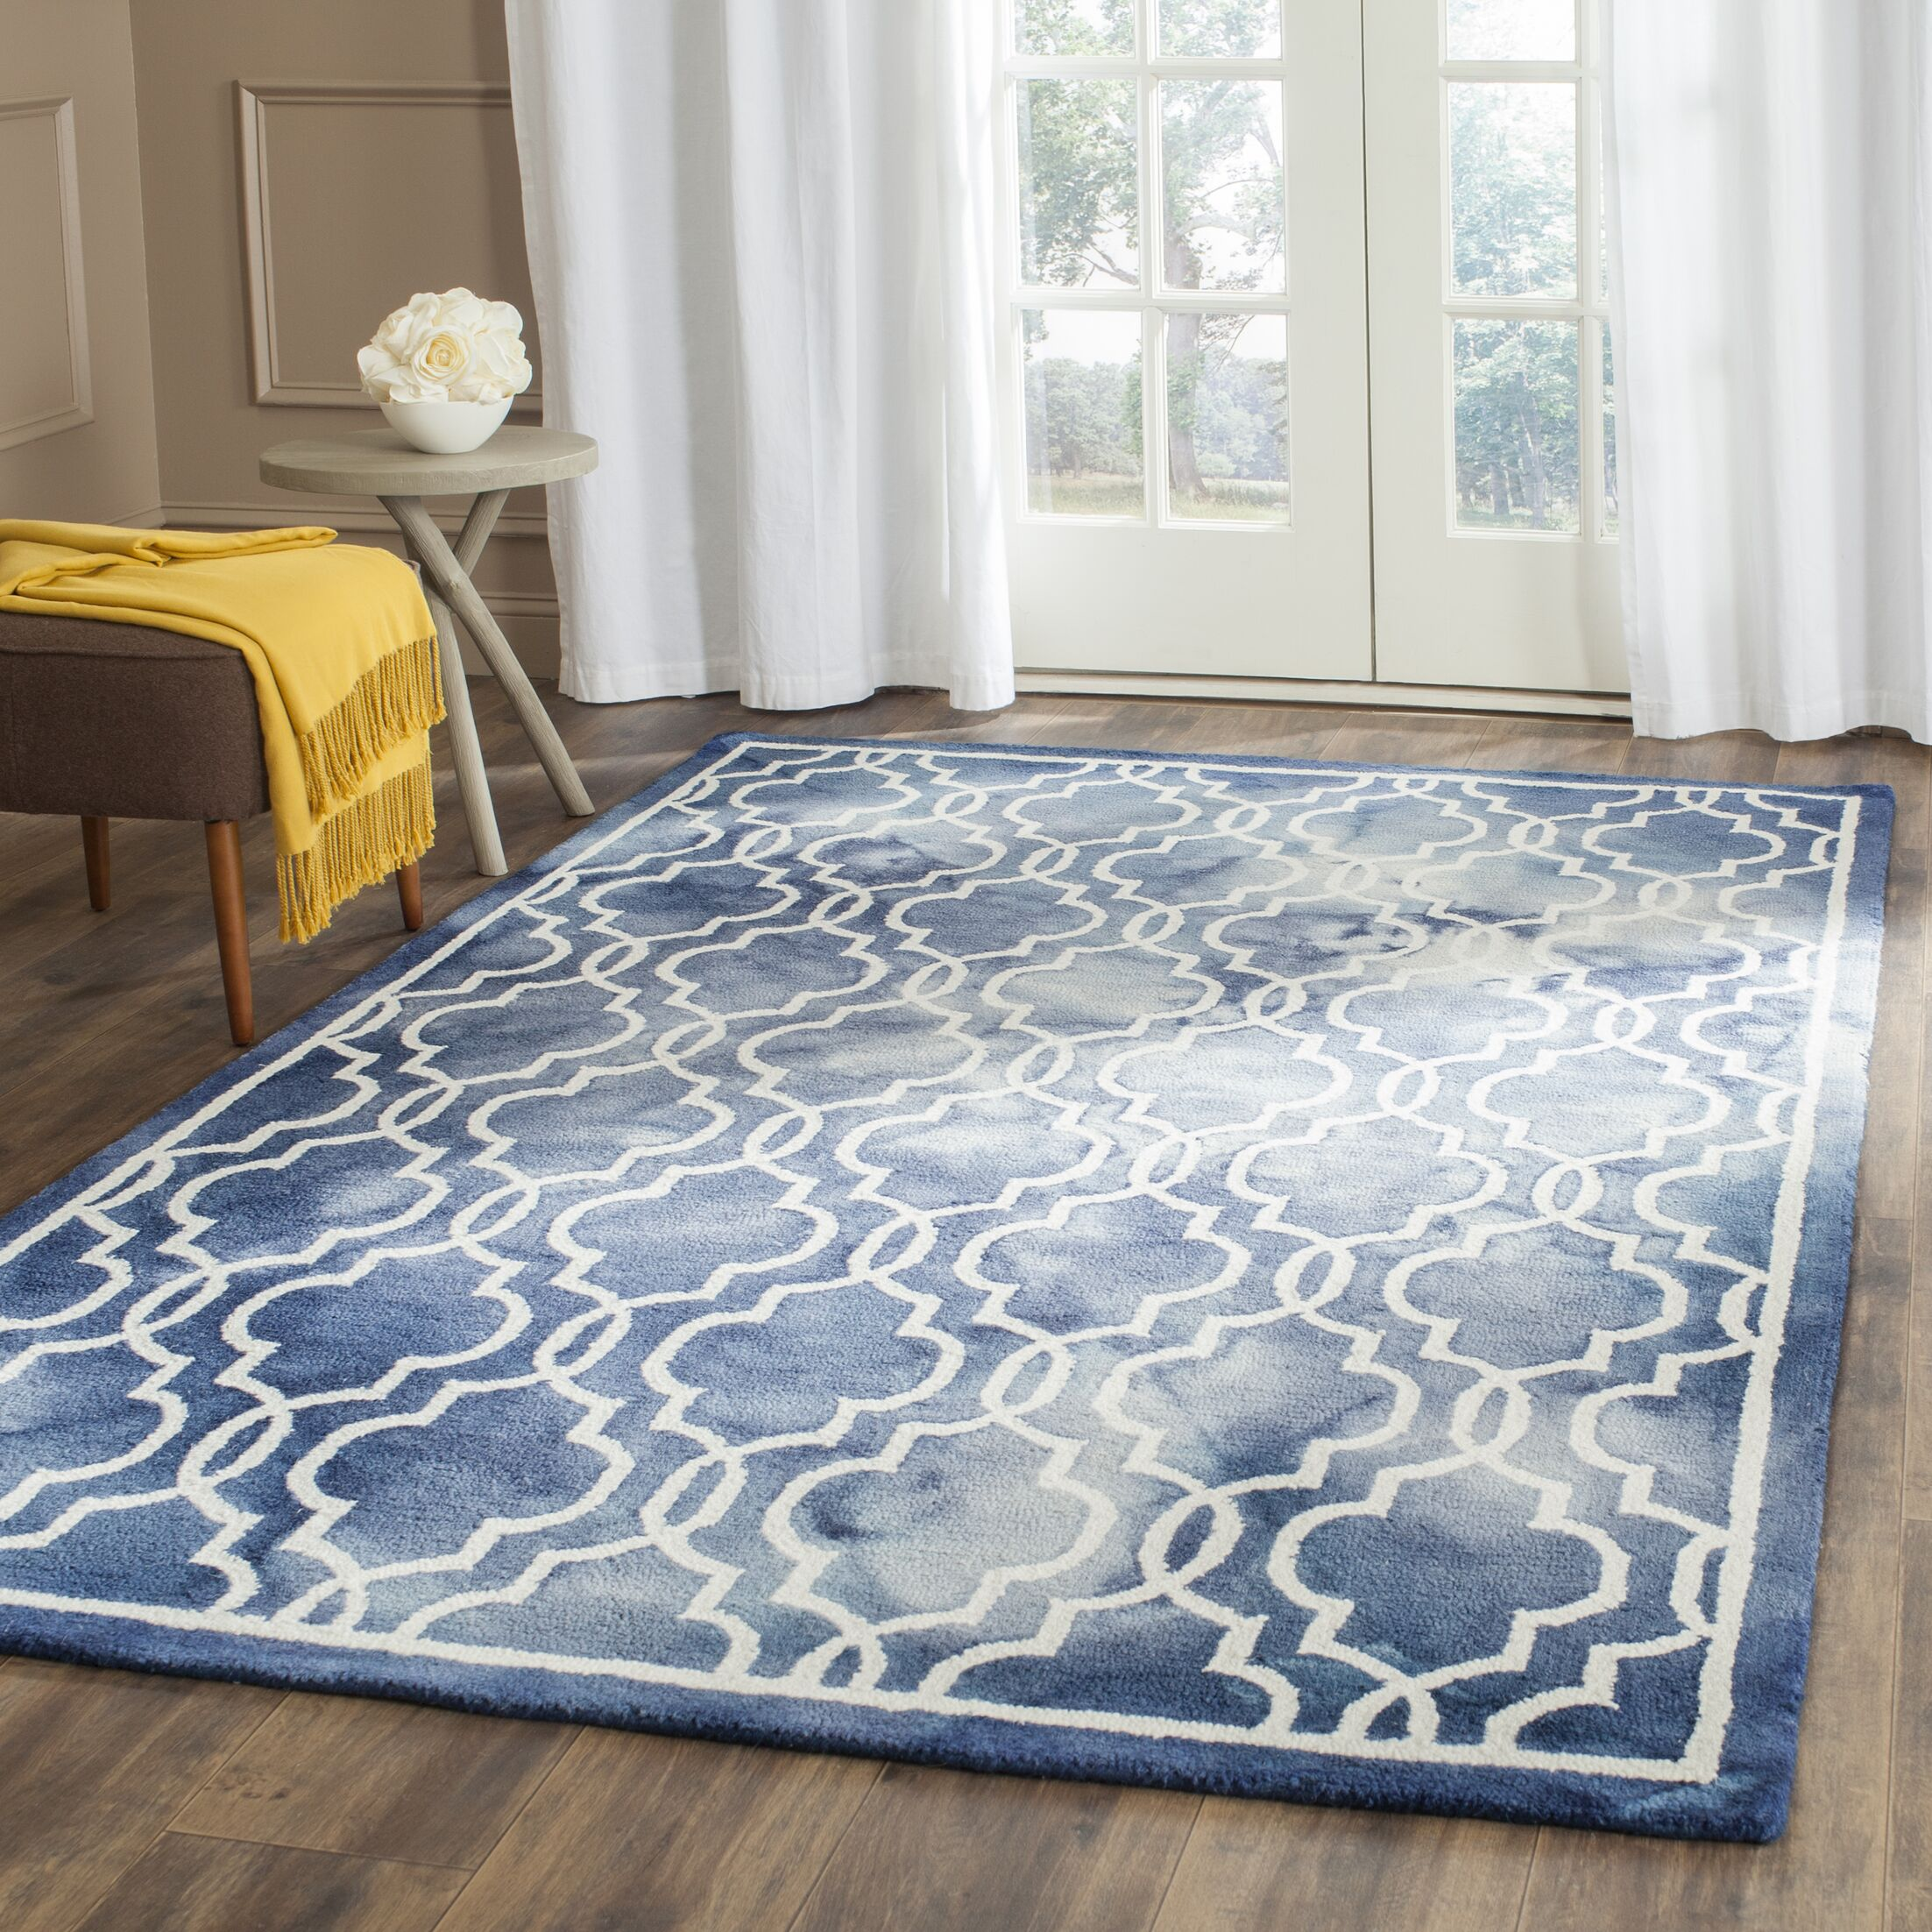 Aurellia Hand-Tufted Navy/Ivory Area Rug Rug Size: Rectangle 9' x 12'